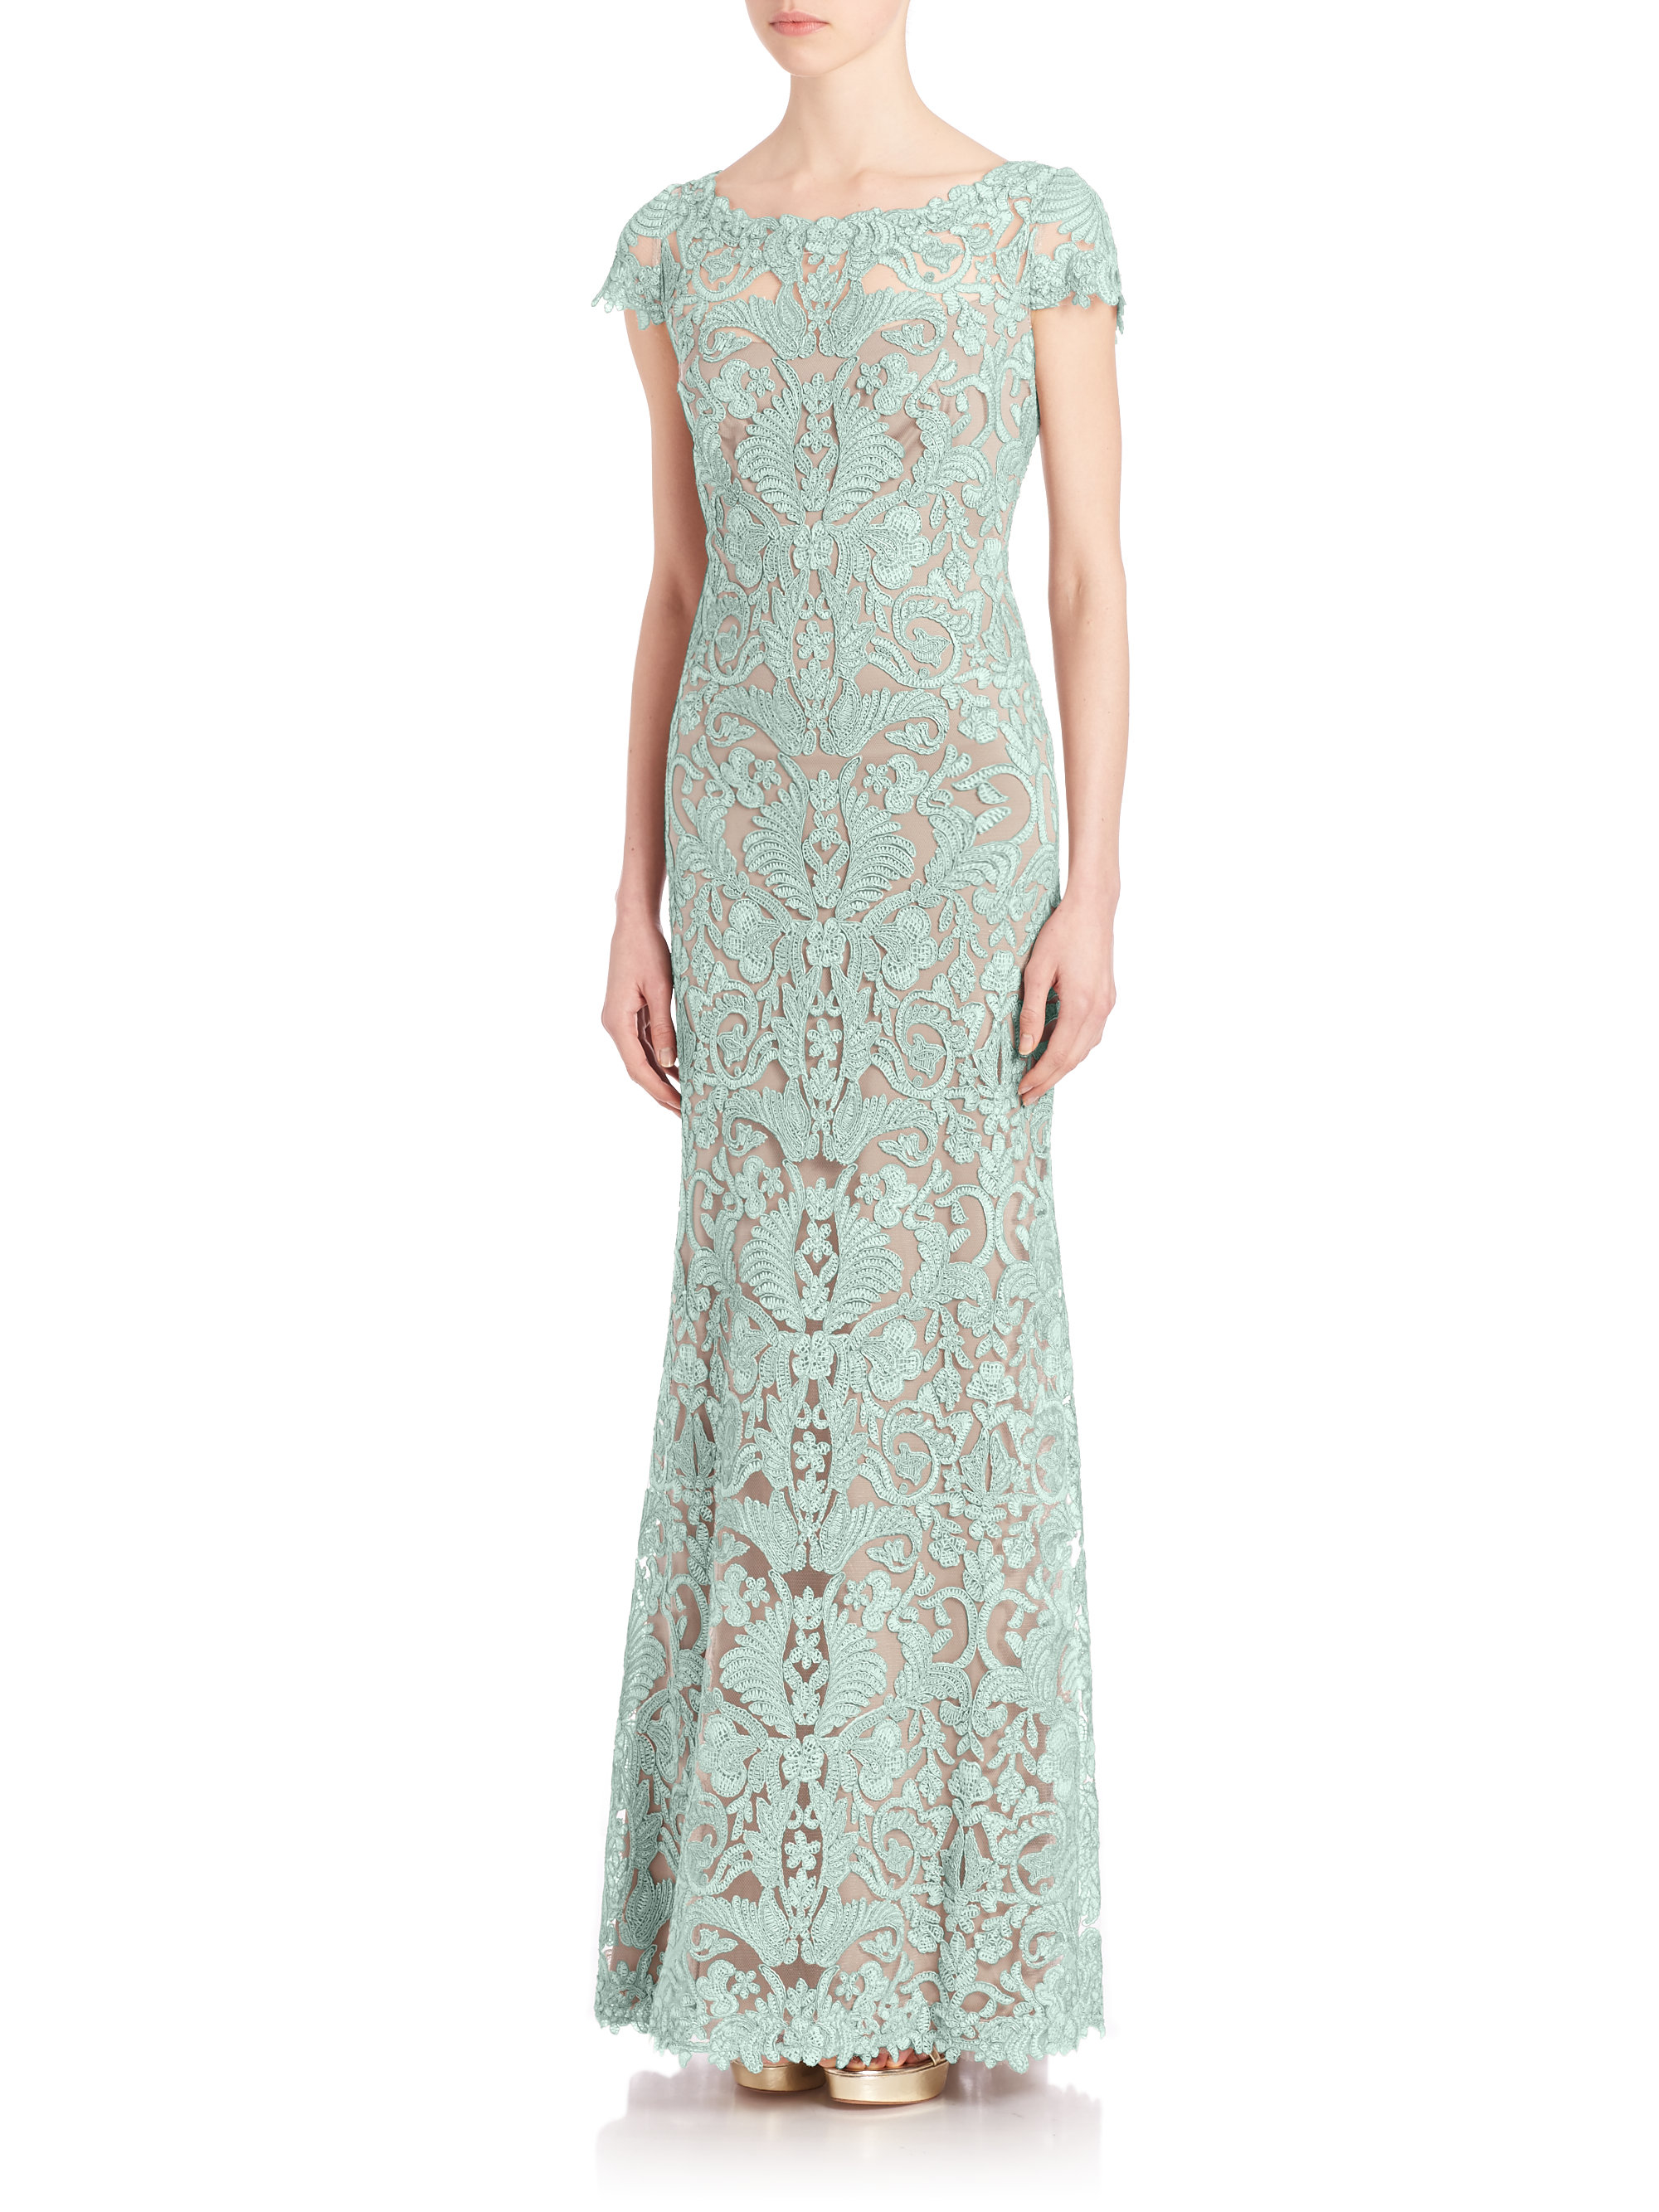 Lyst - Tadashi shoji Embroidered Boat-Neck Lace Gown in Green